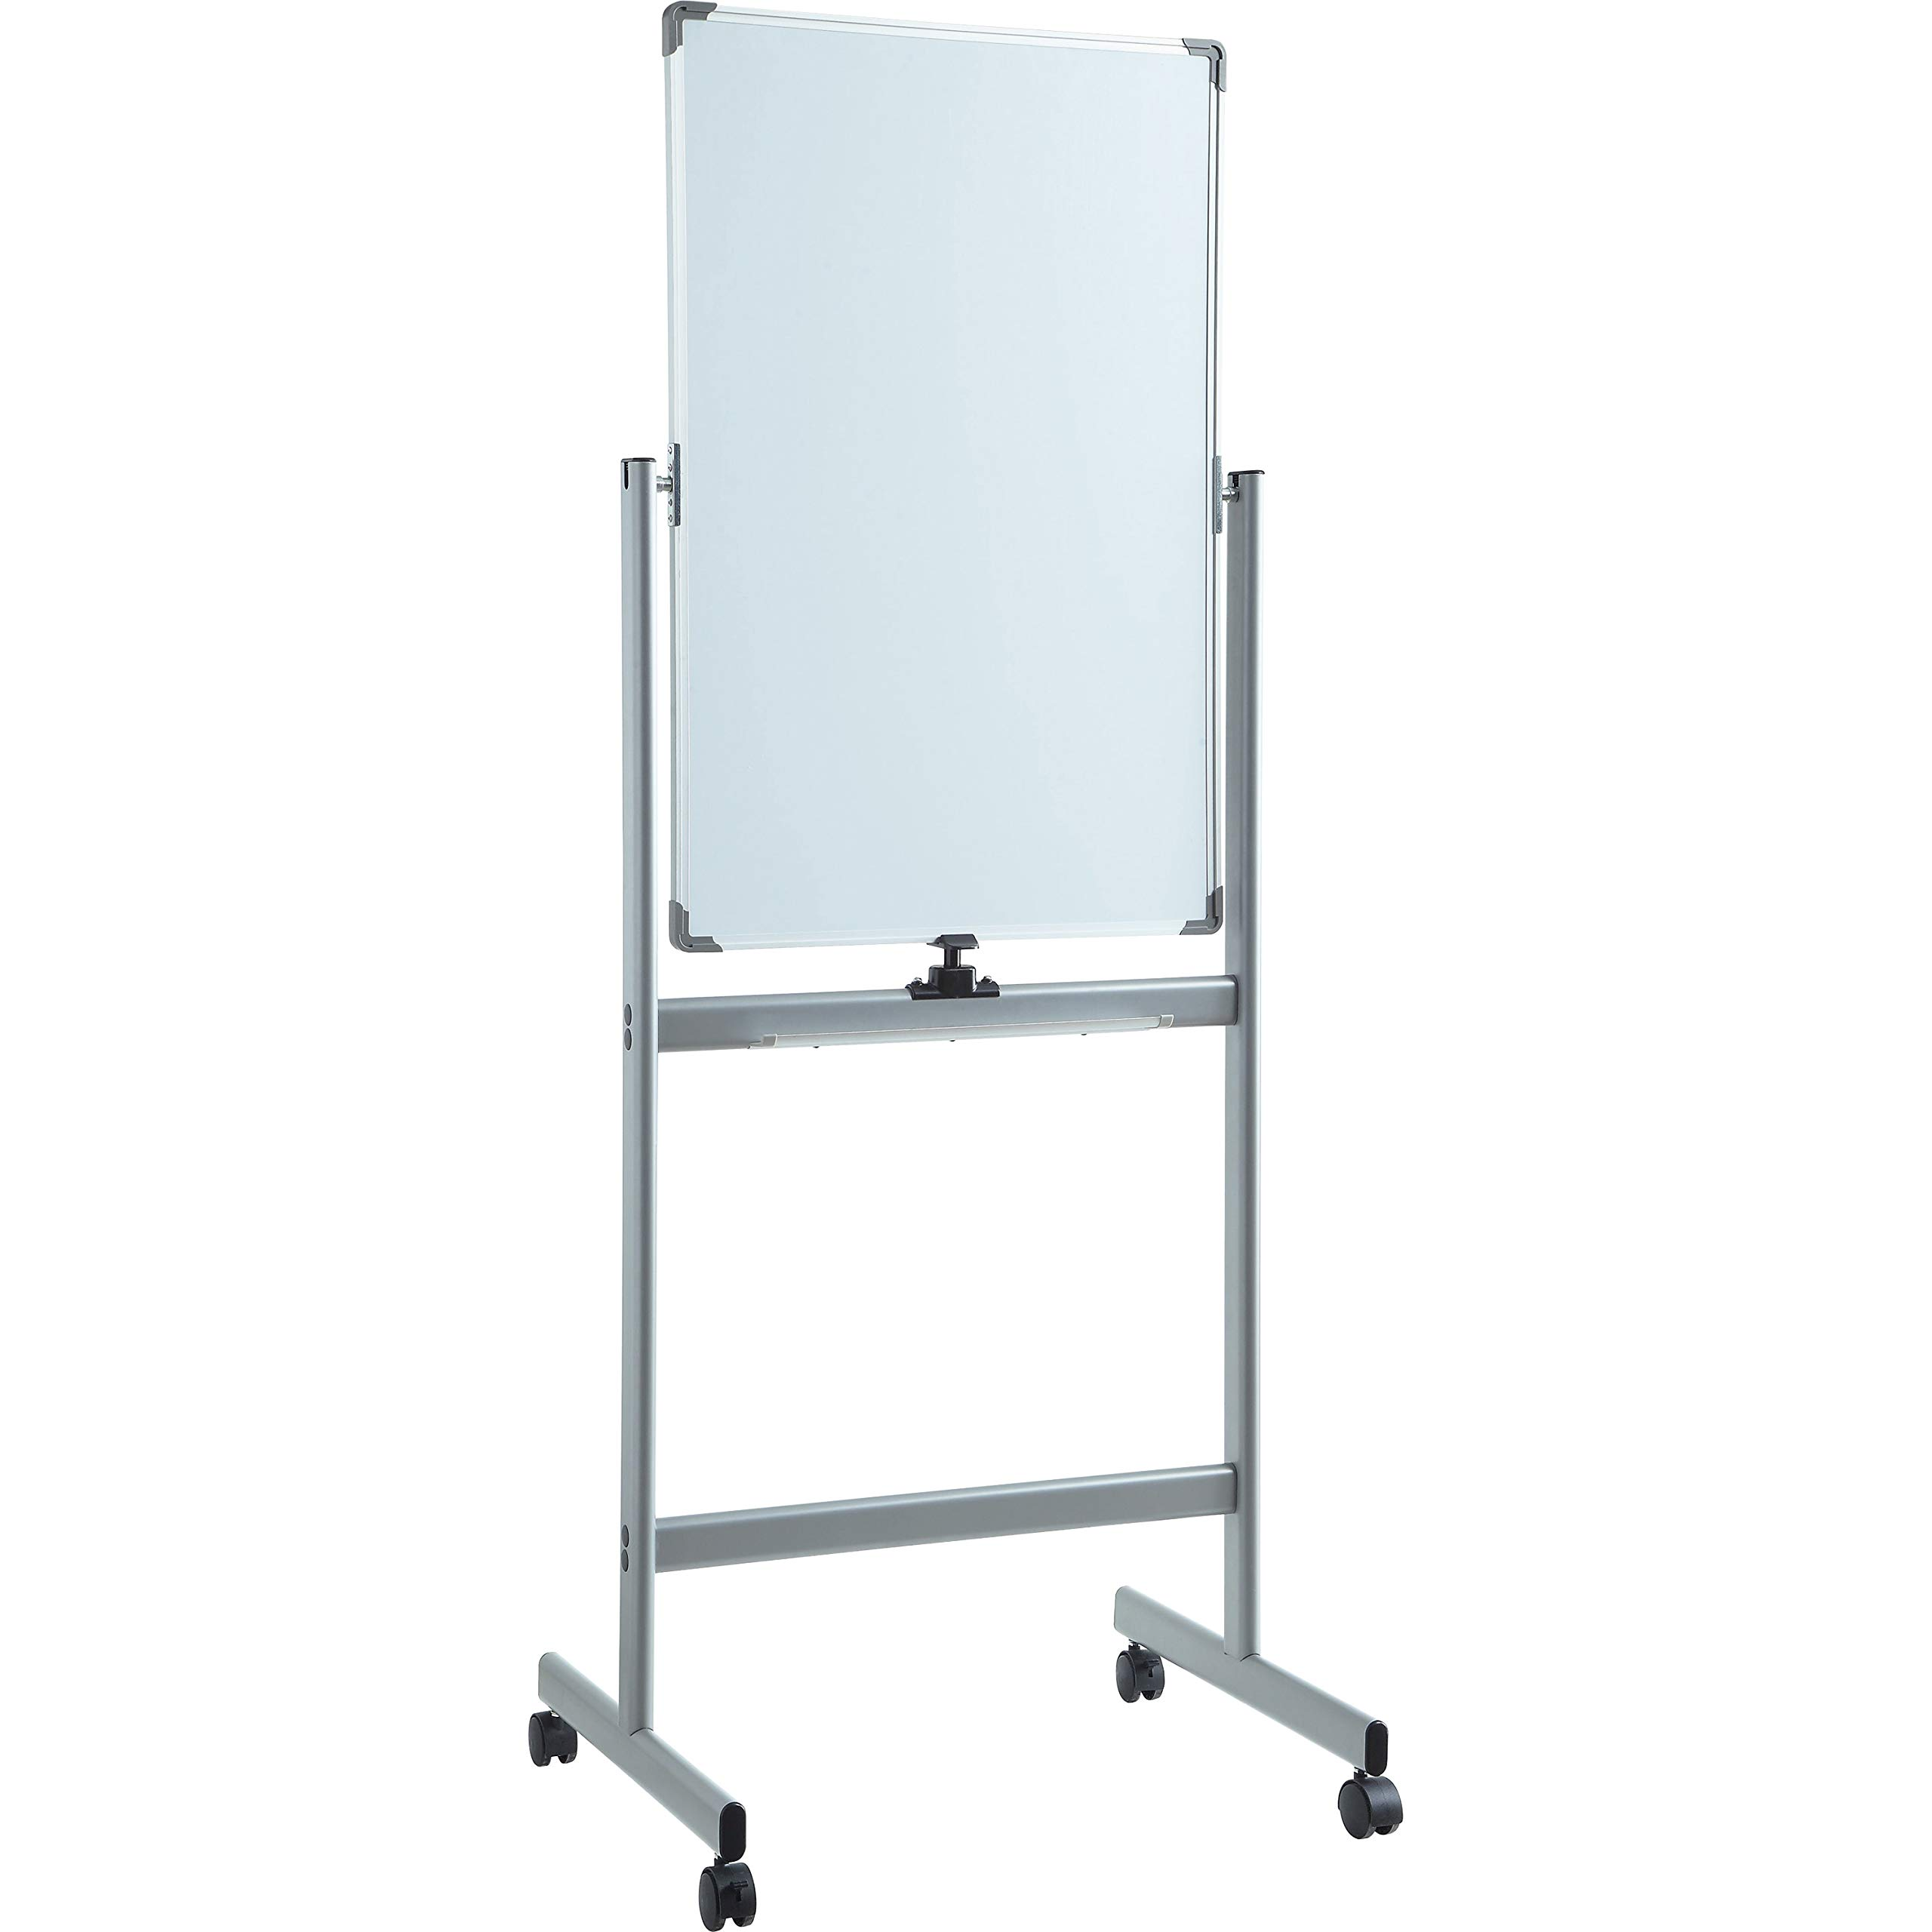 Lorell Magnetic Combo Presentation and Display Board (52567)